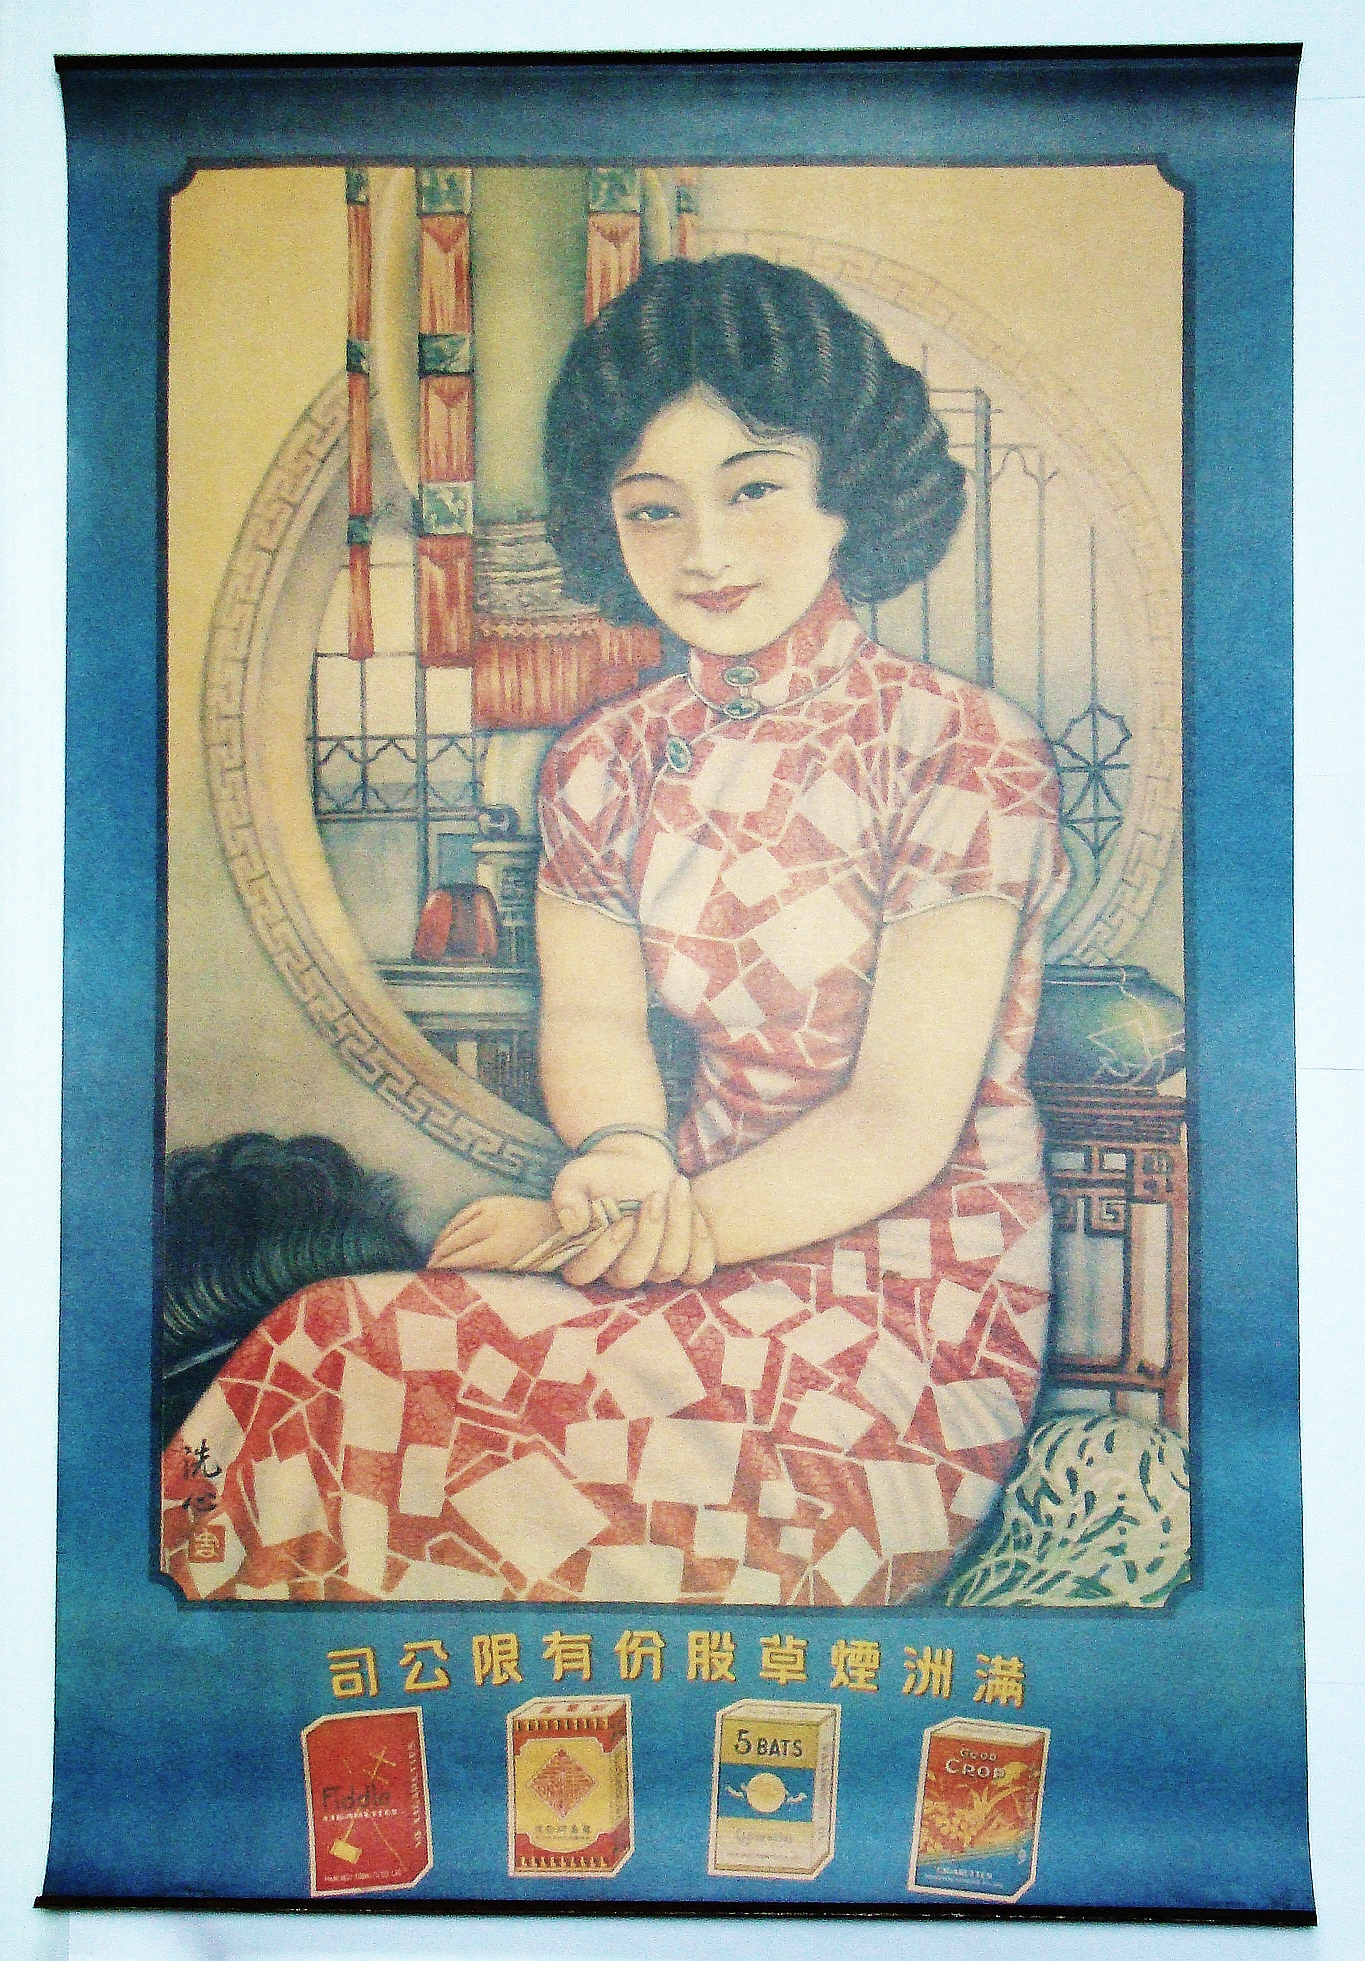 Image for Chinese / Shanghai Replica Cigarette Advertising Poster Featuring Attractive Young Lady and the Fiddle, 5 (Five) Bats and Good Crop Cigarette Brands